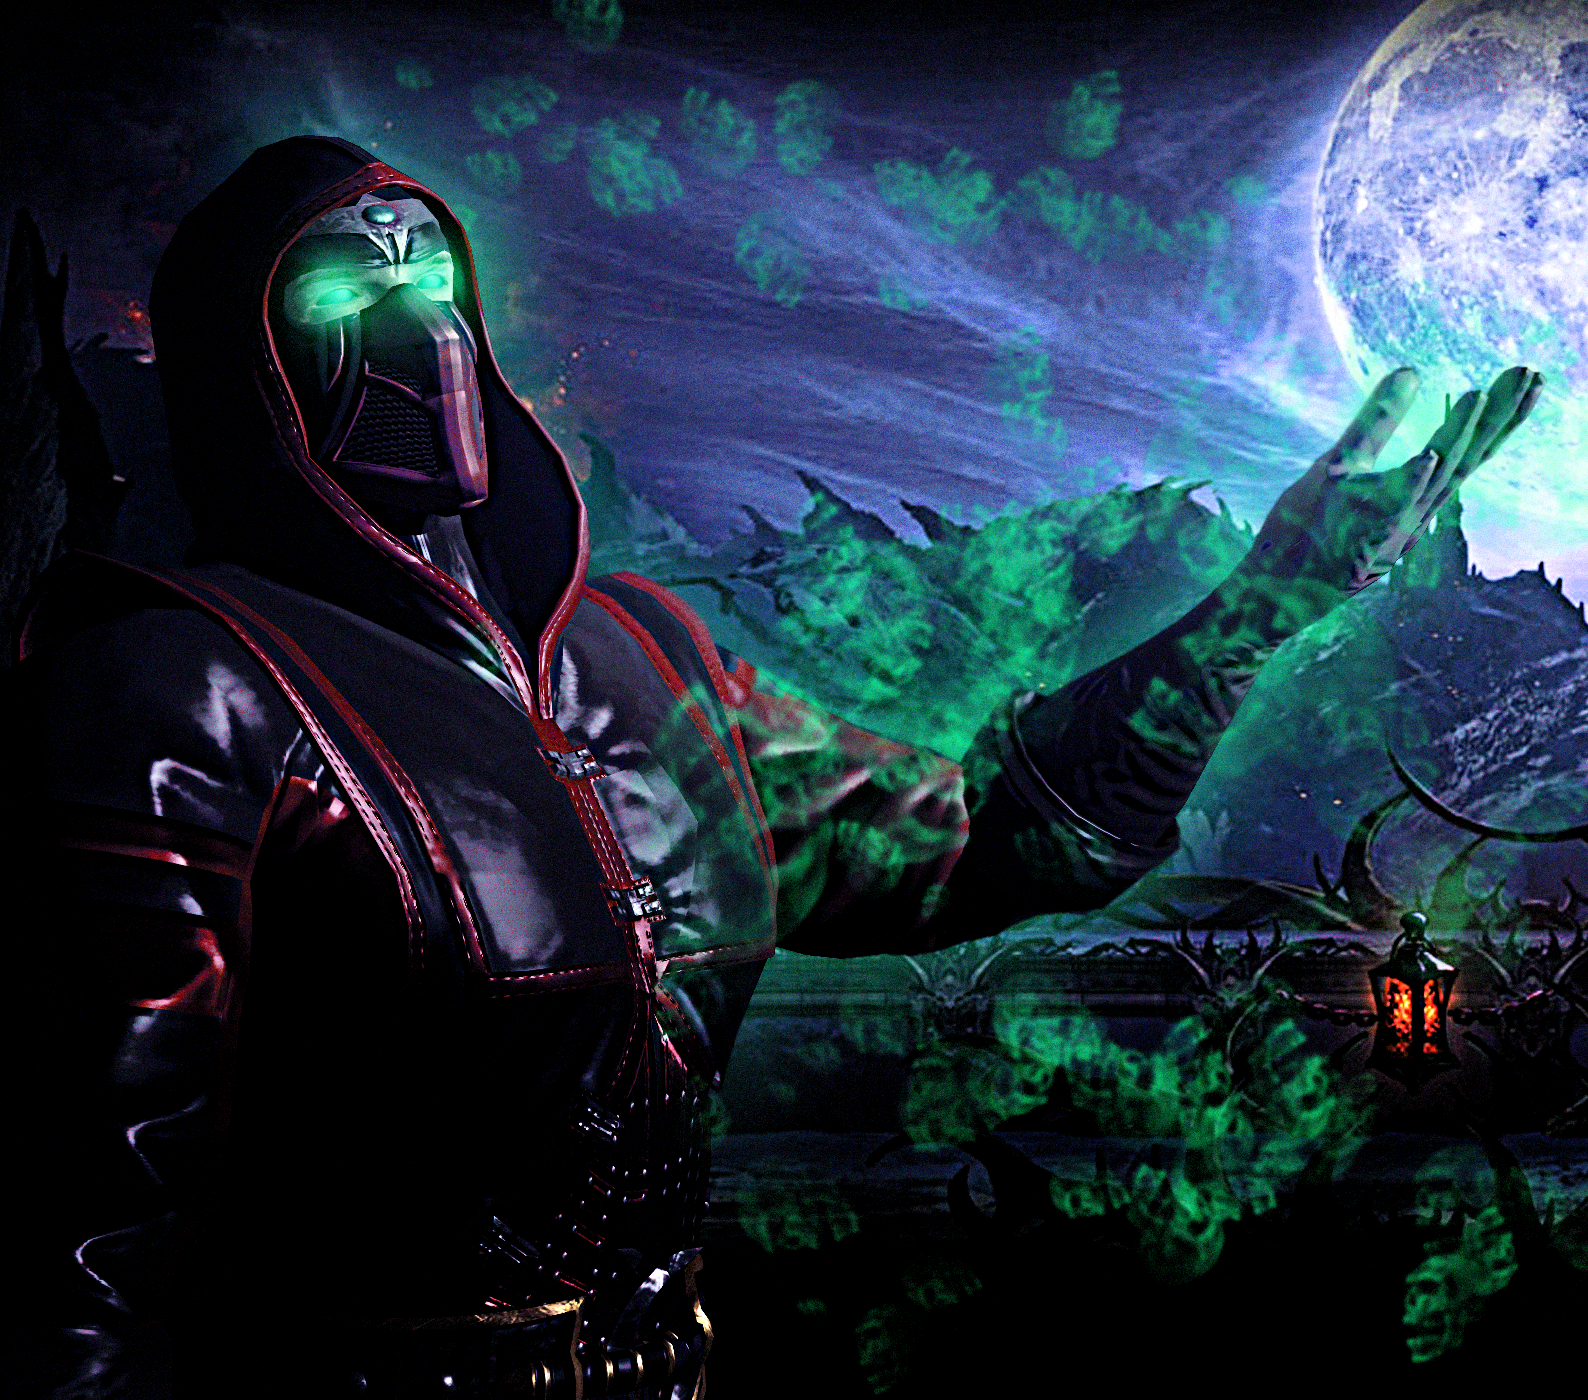 mk9 ermac is still in the hood by sovietmentality on